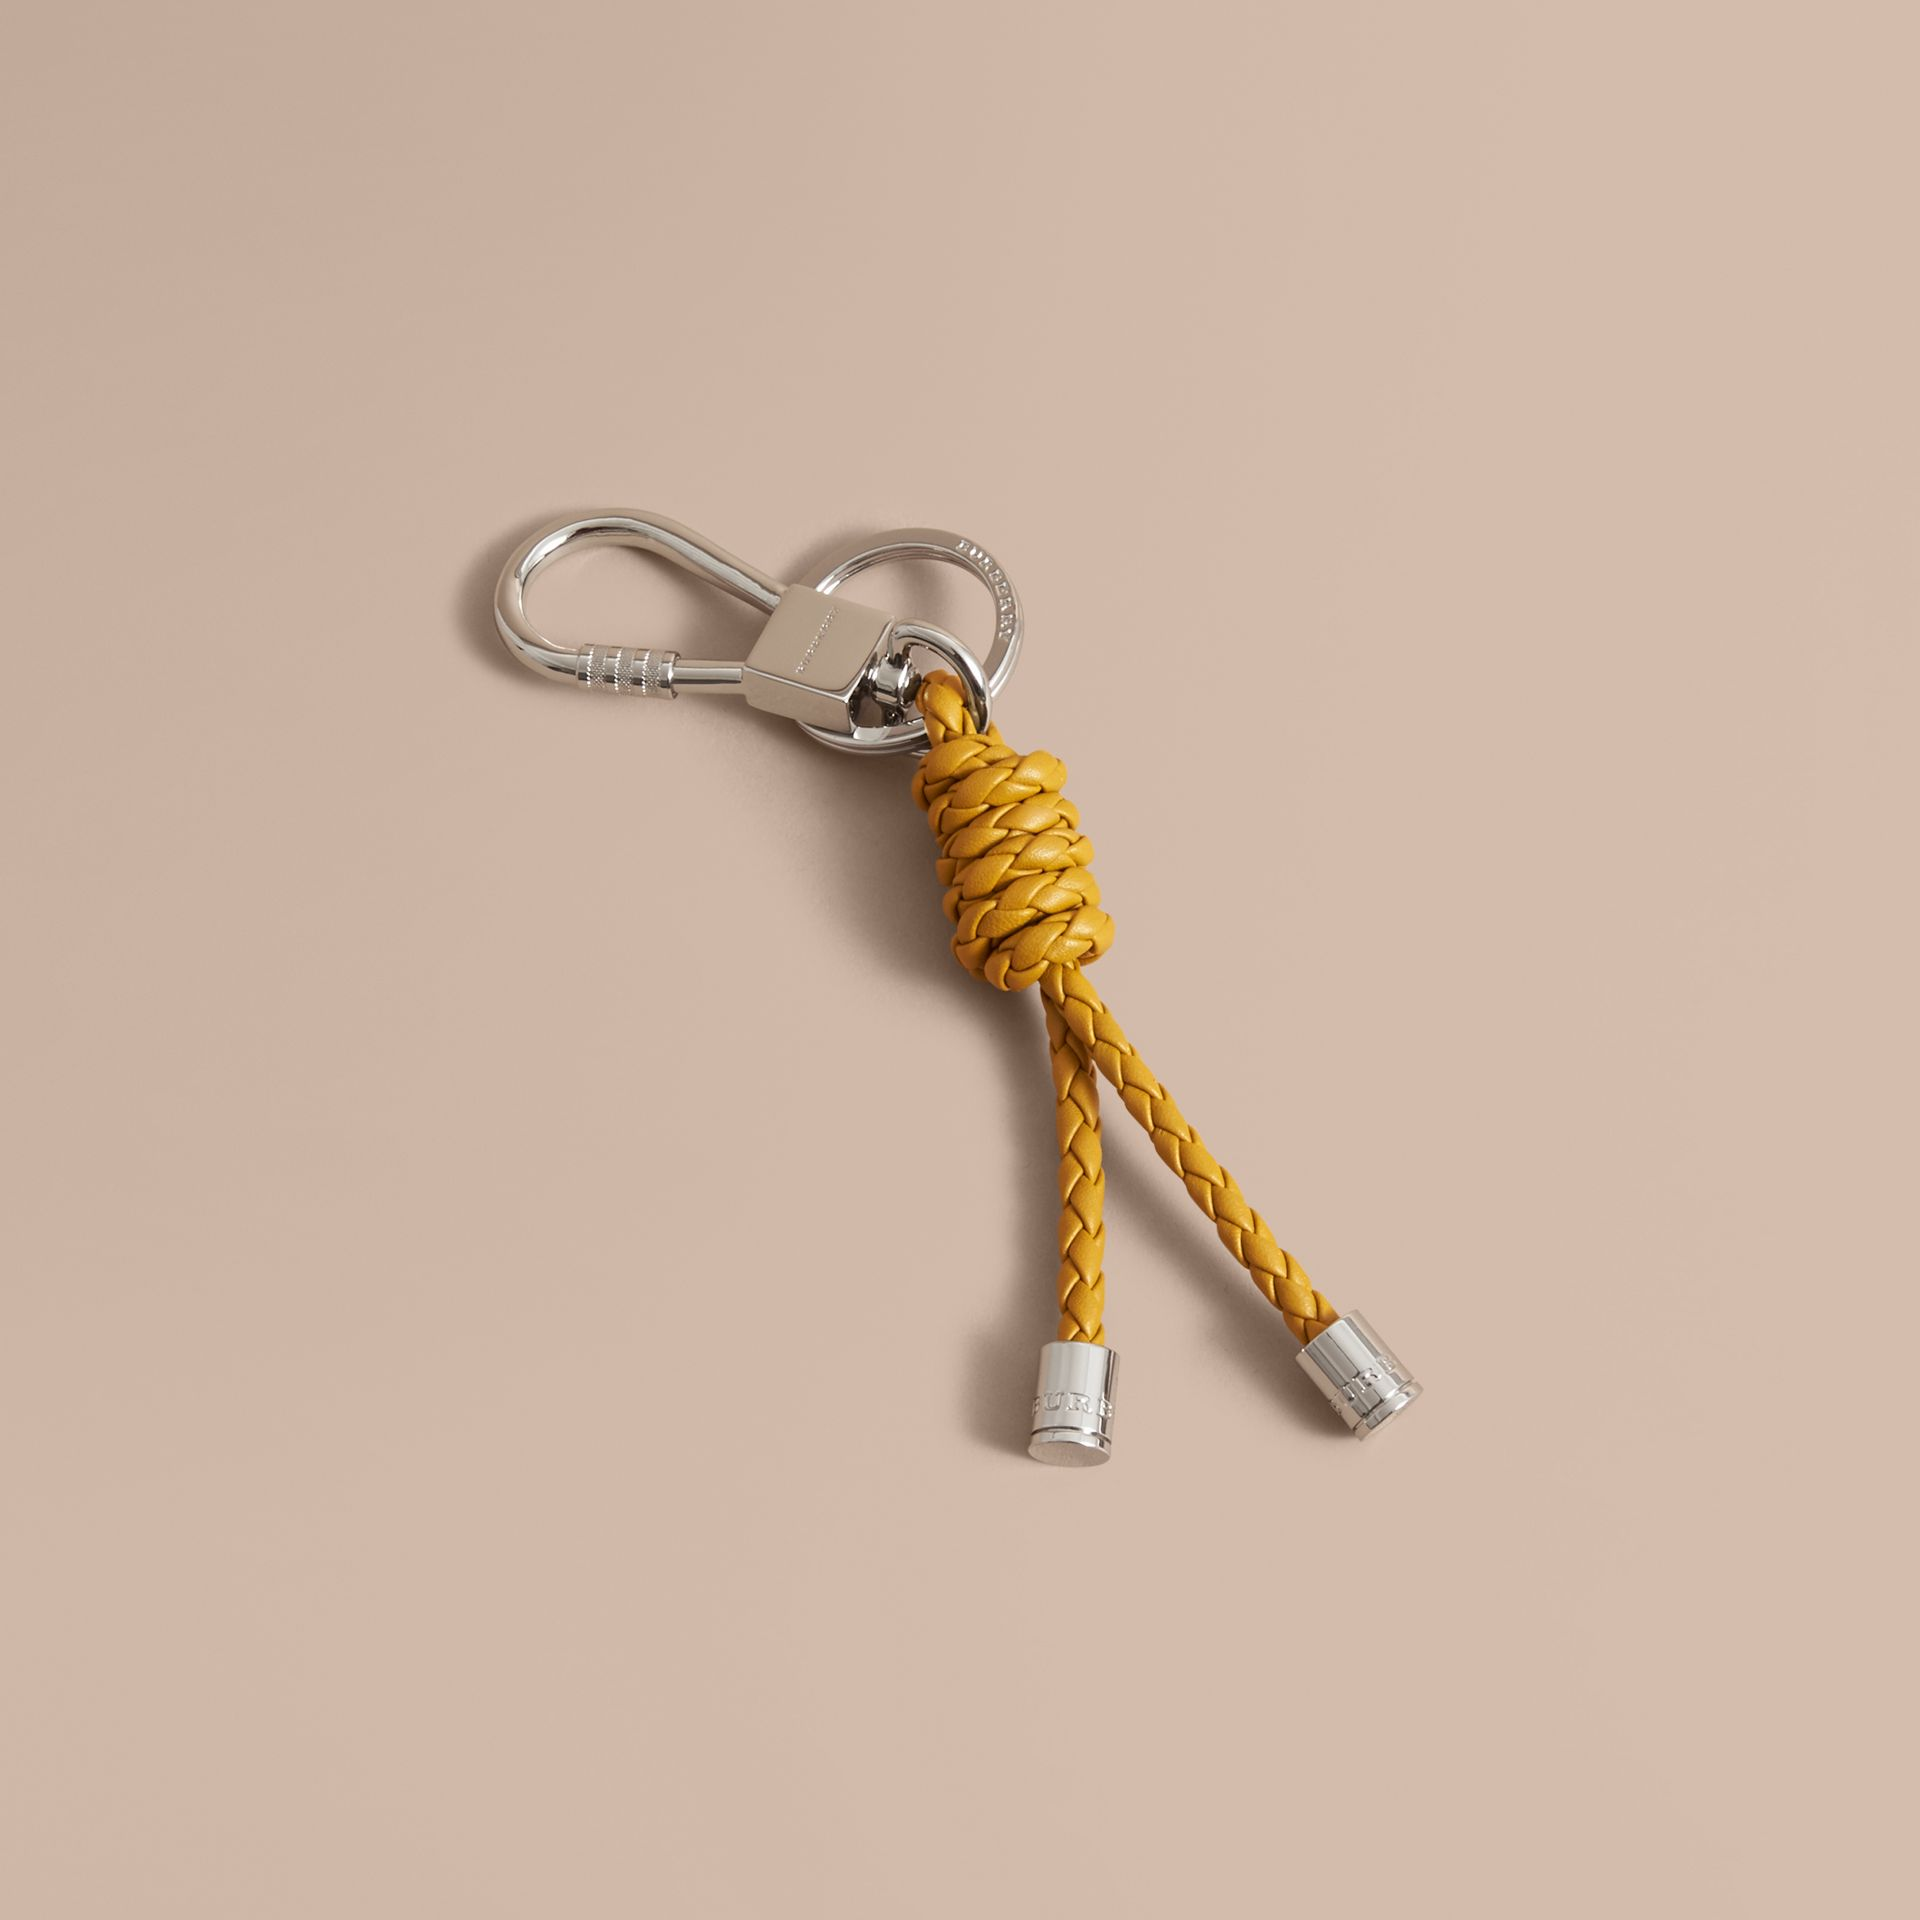 Braided Leather Knot Key Ring in Bright Citrus - Men | Burberry - gallery image 1